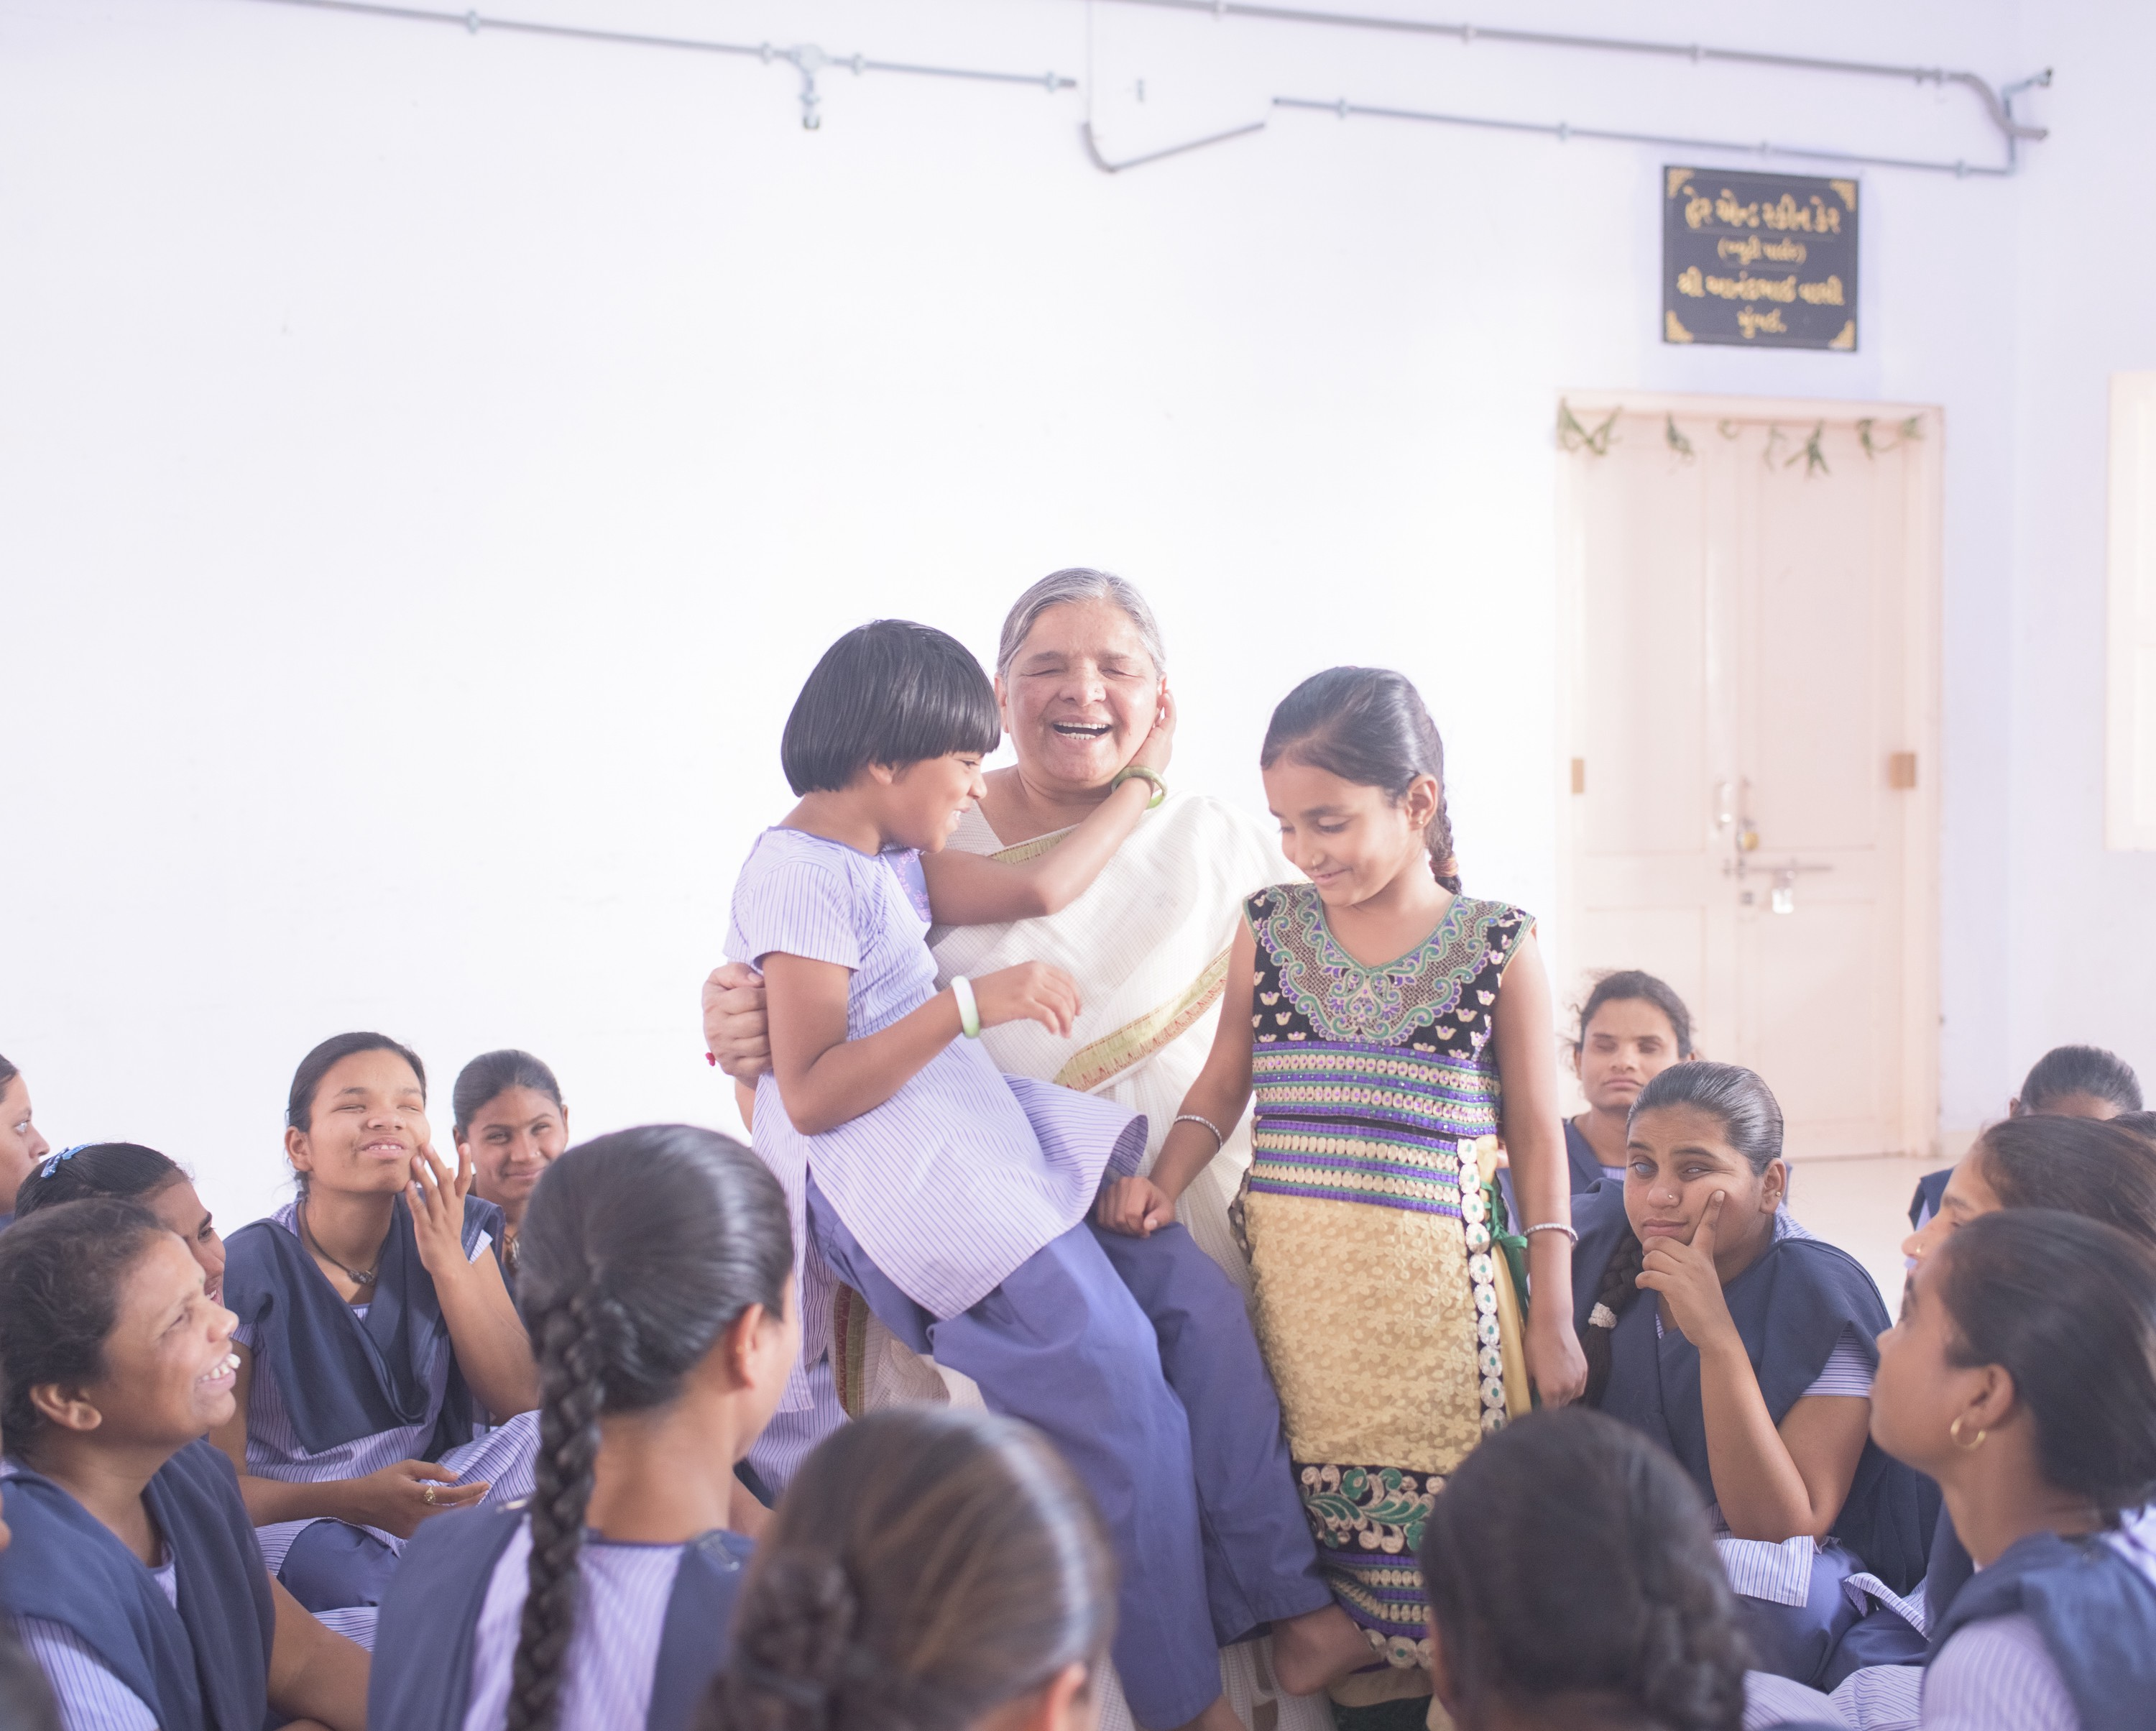 For India's Blind Women, A School With A Vision - BRIGHT Magazine